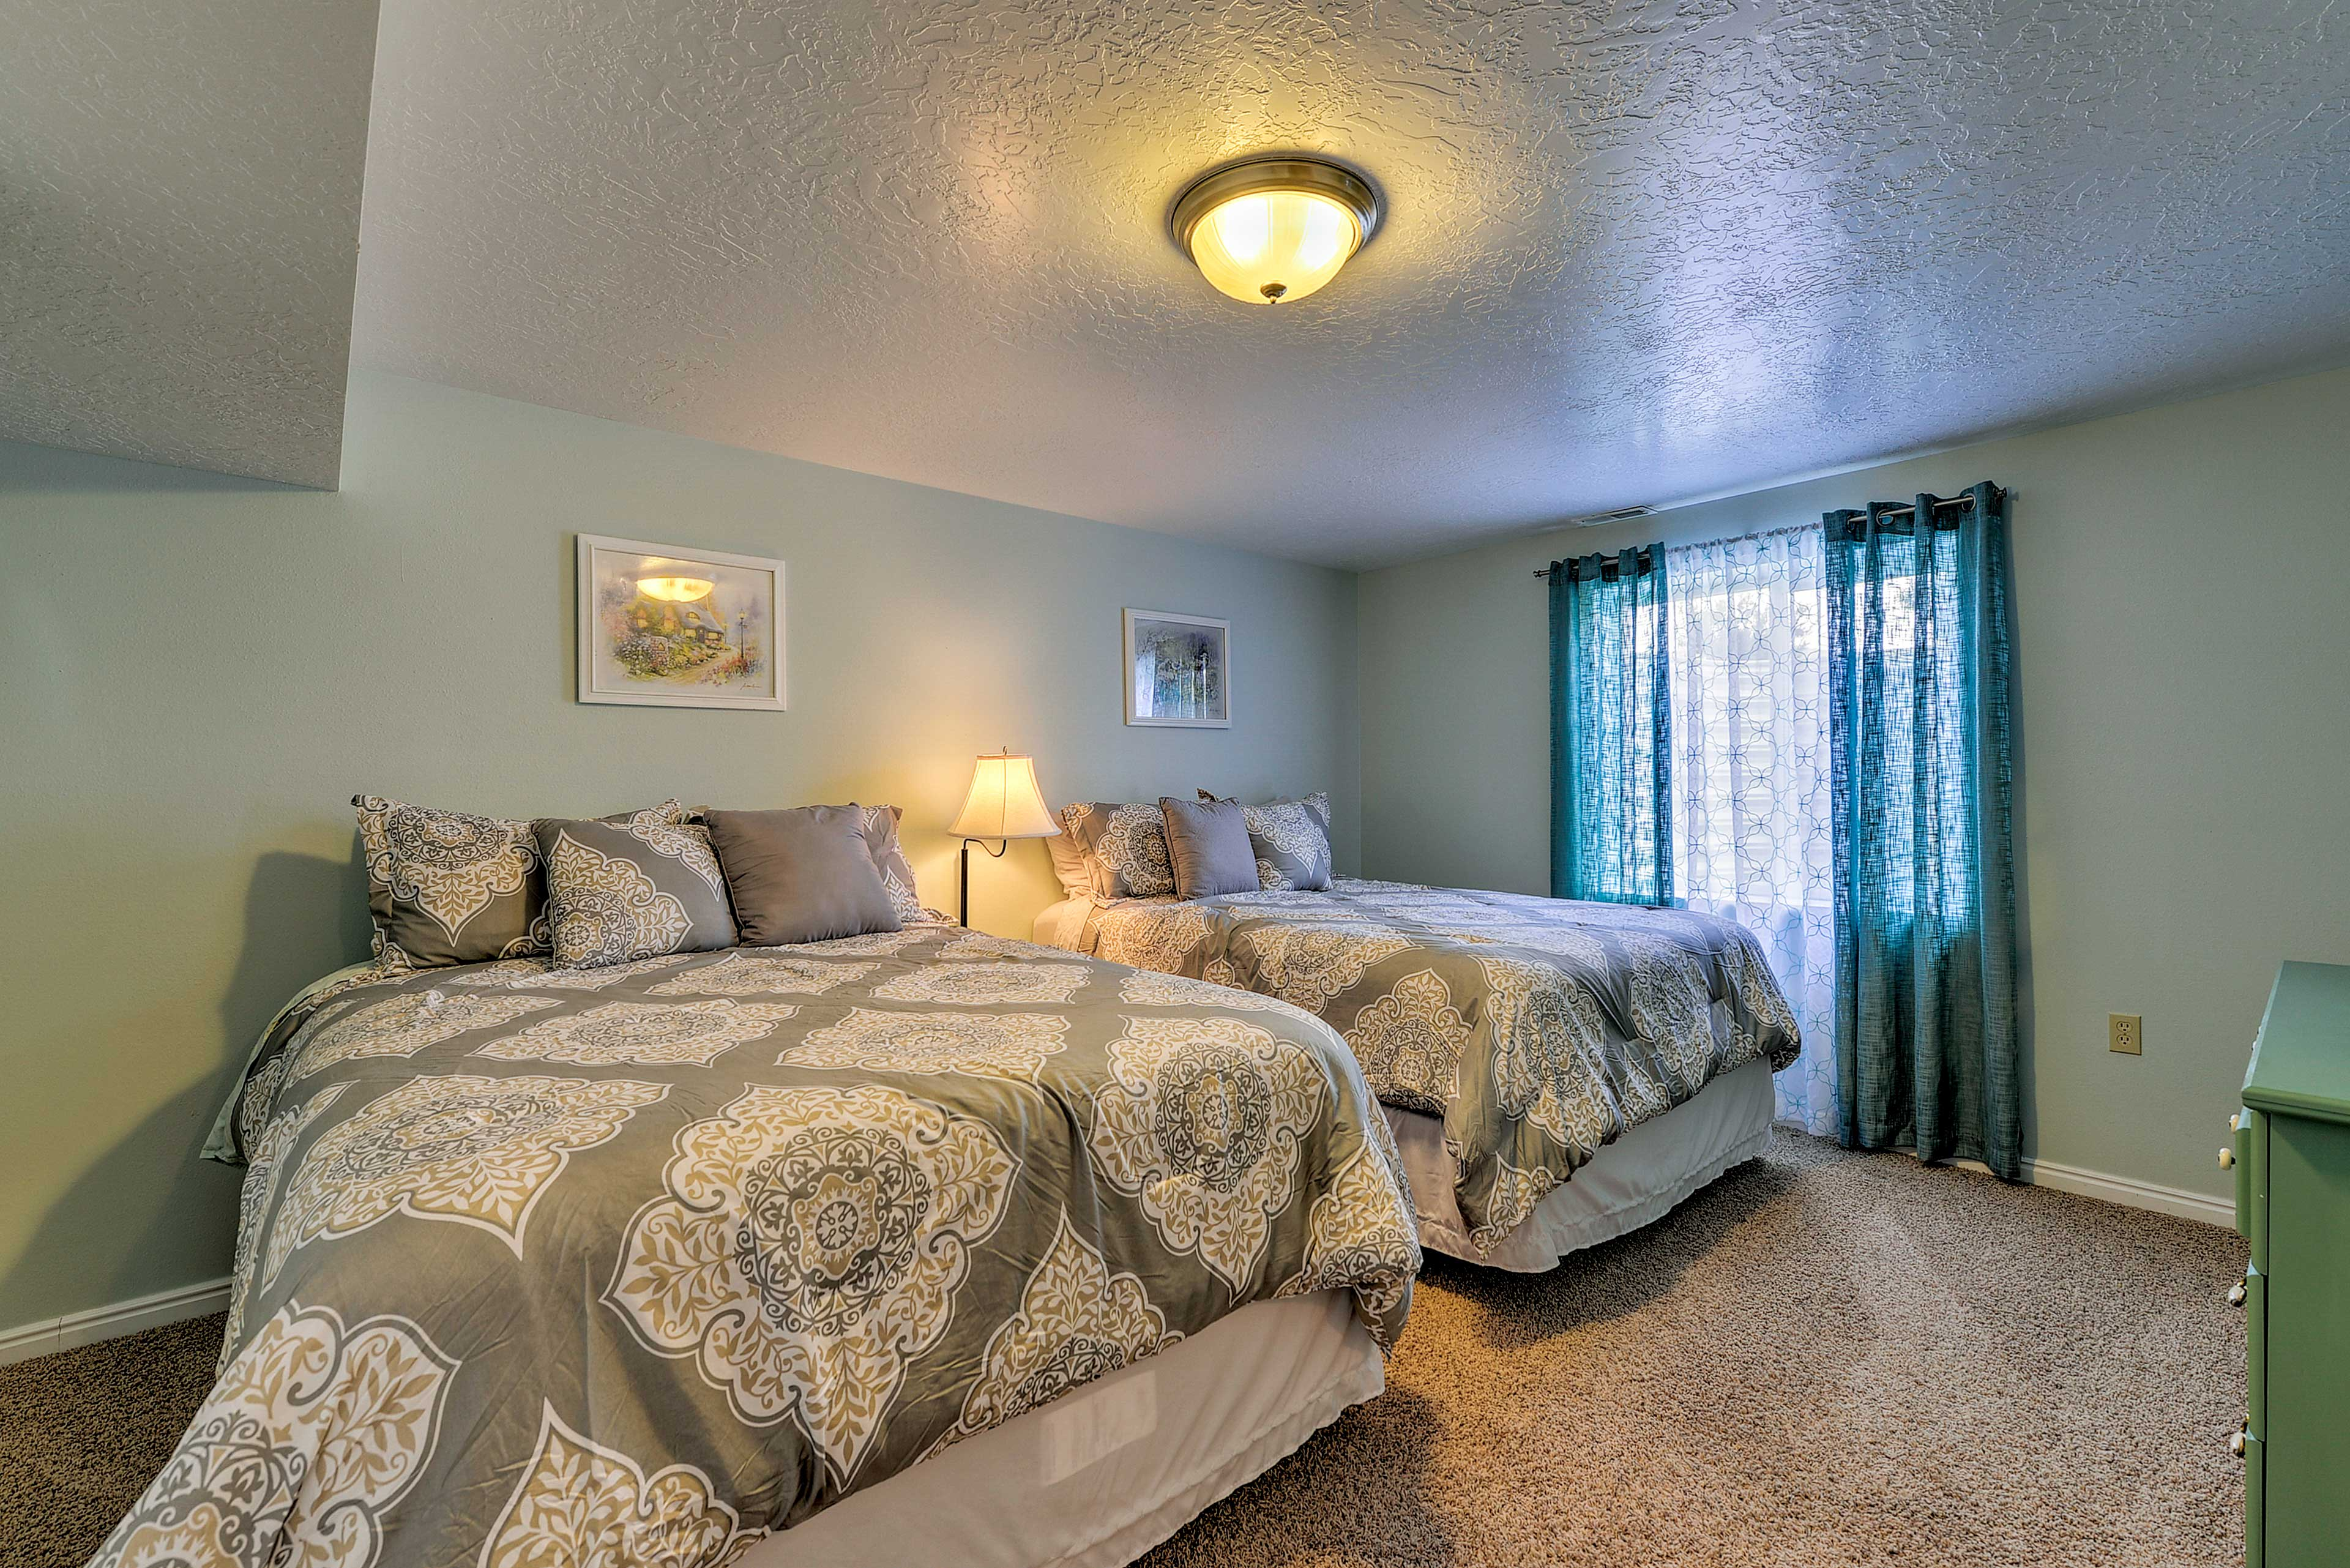 The first bedroom has 2 queen-sized beds.